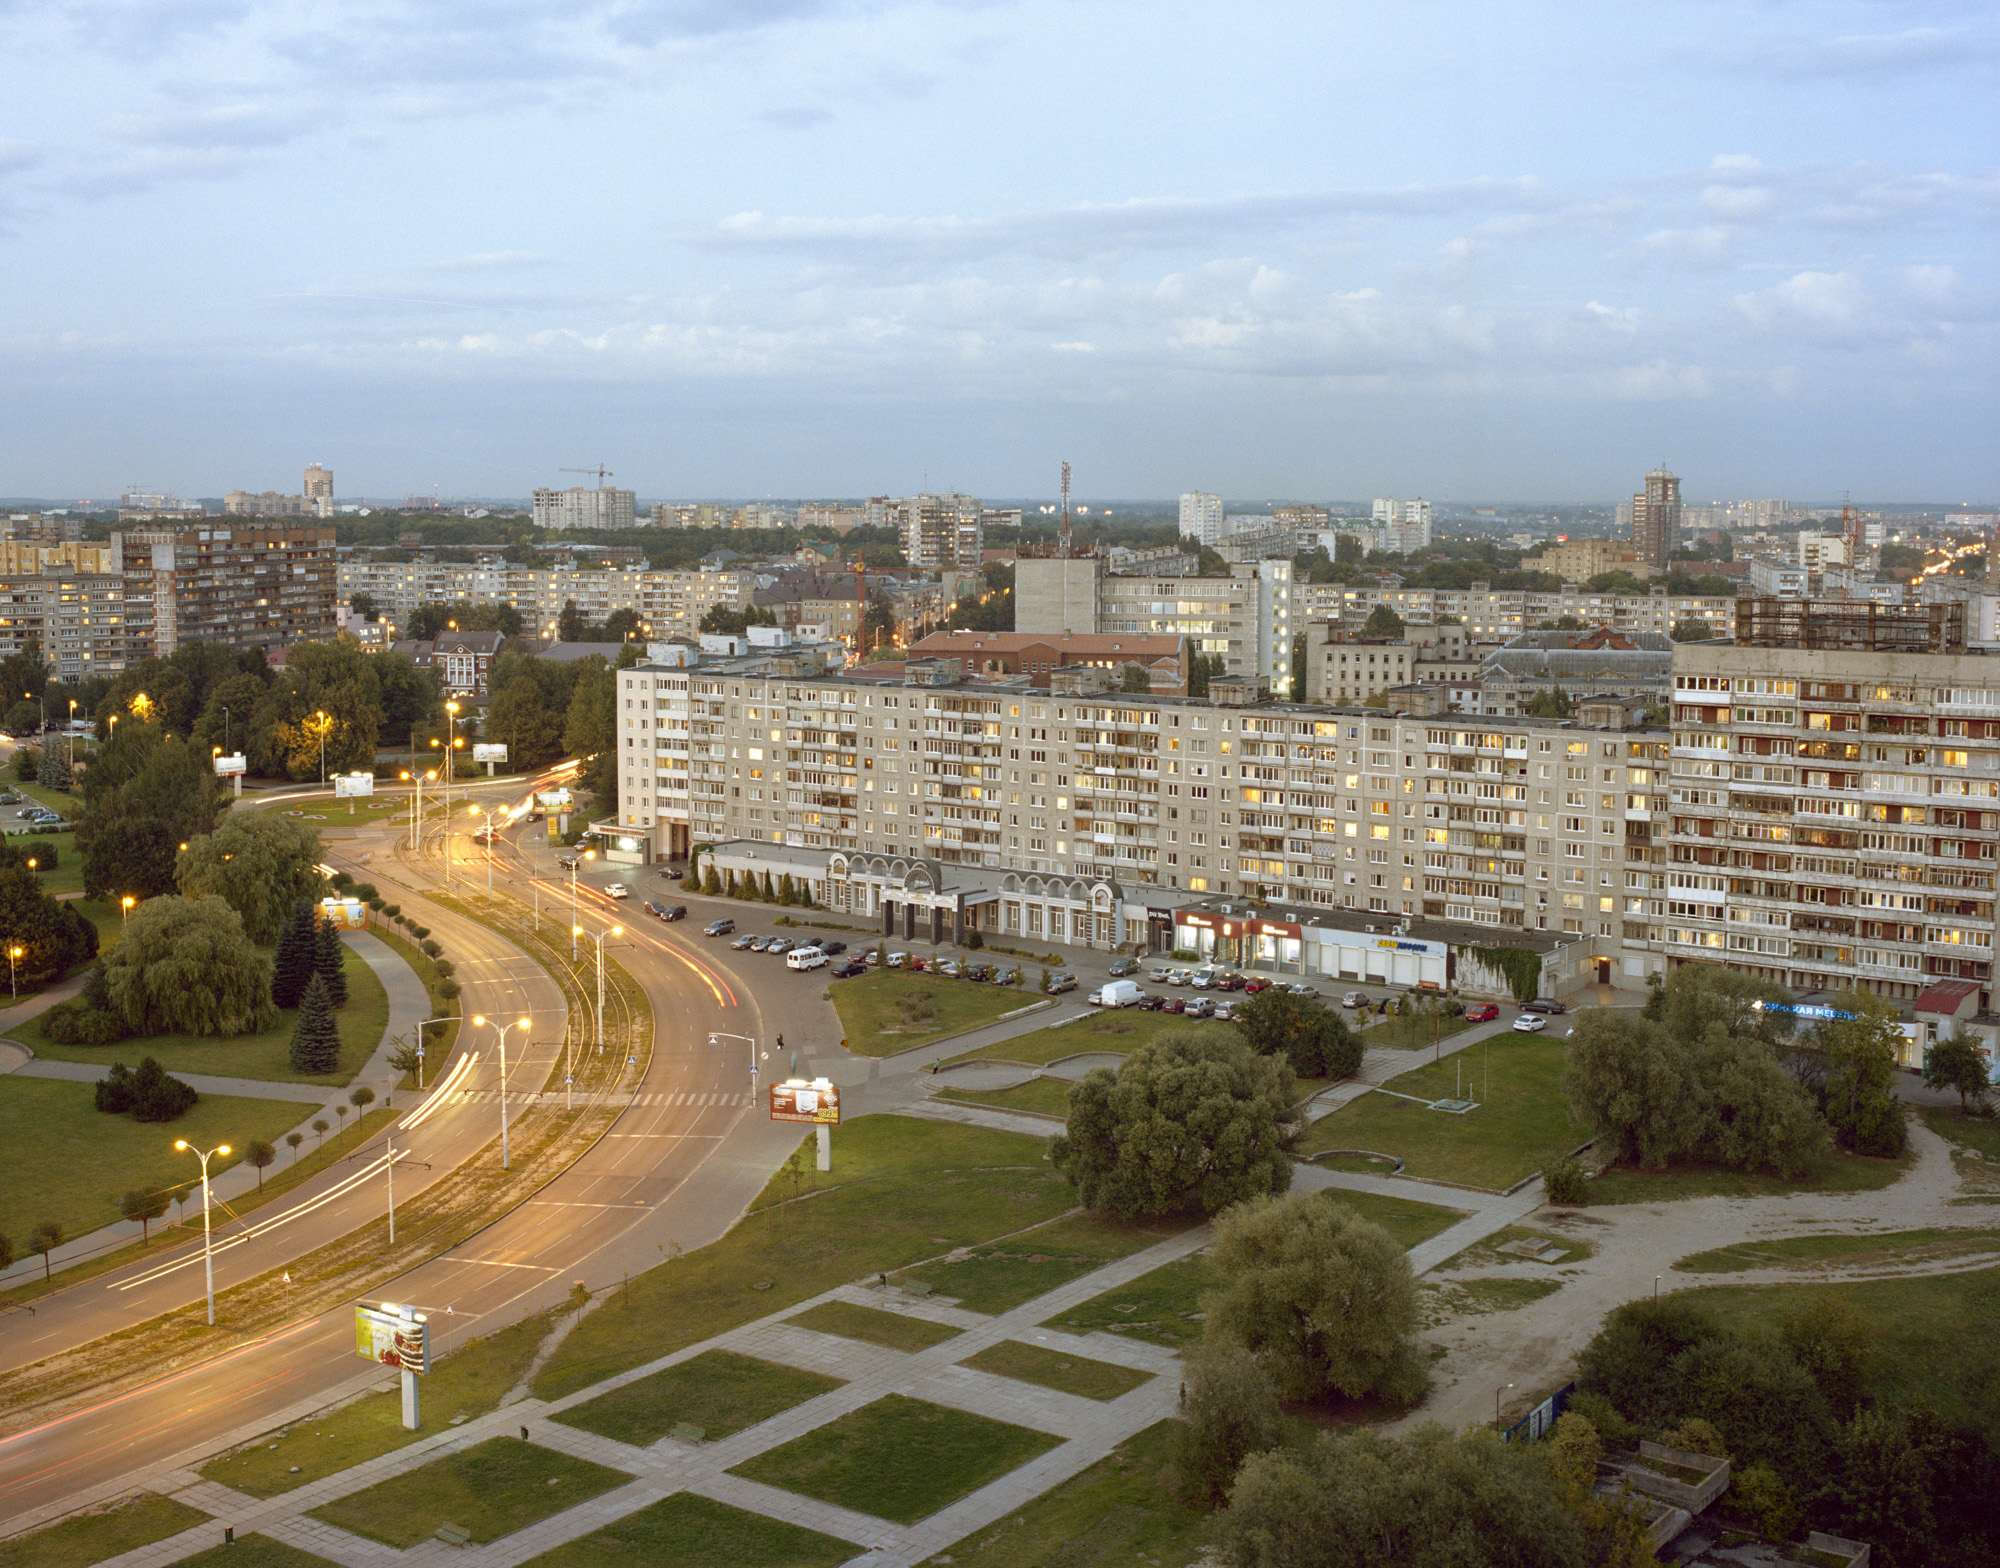 25-View from house of soviets, Kaliningrad 2015